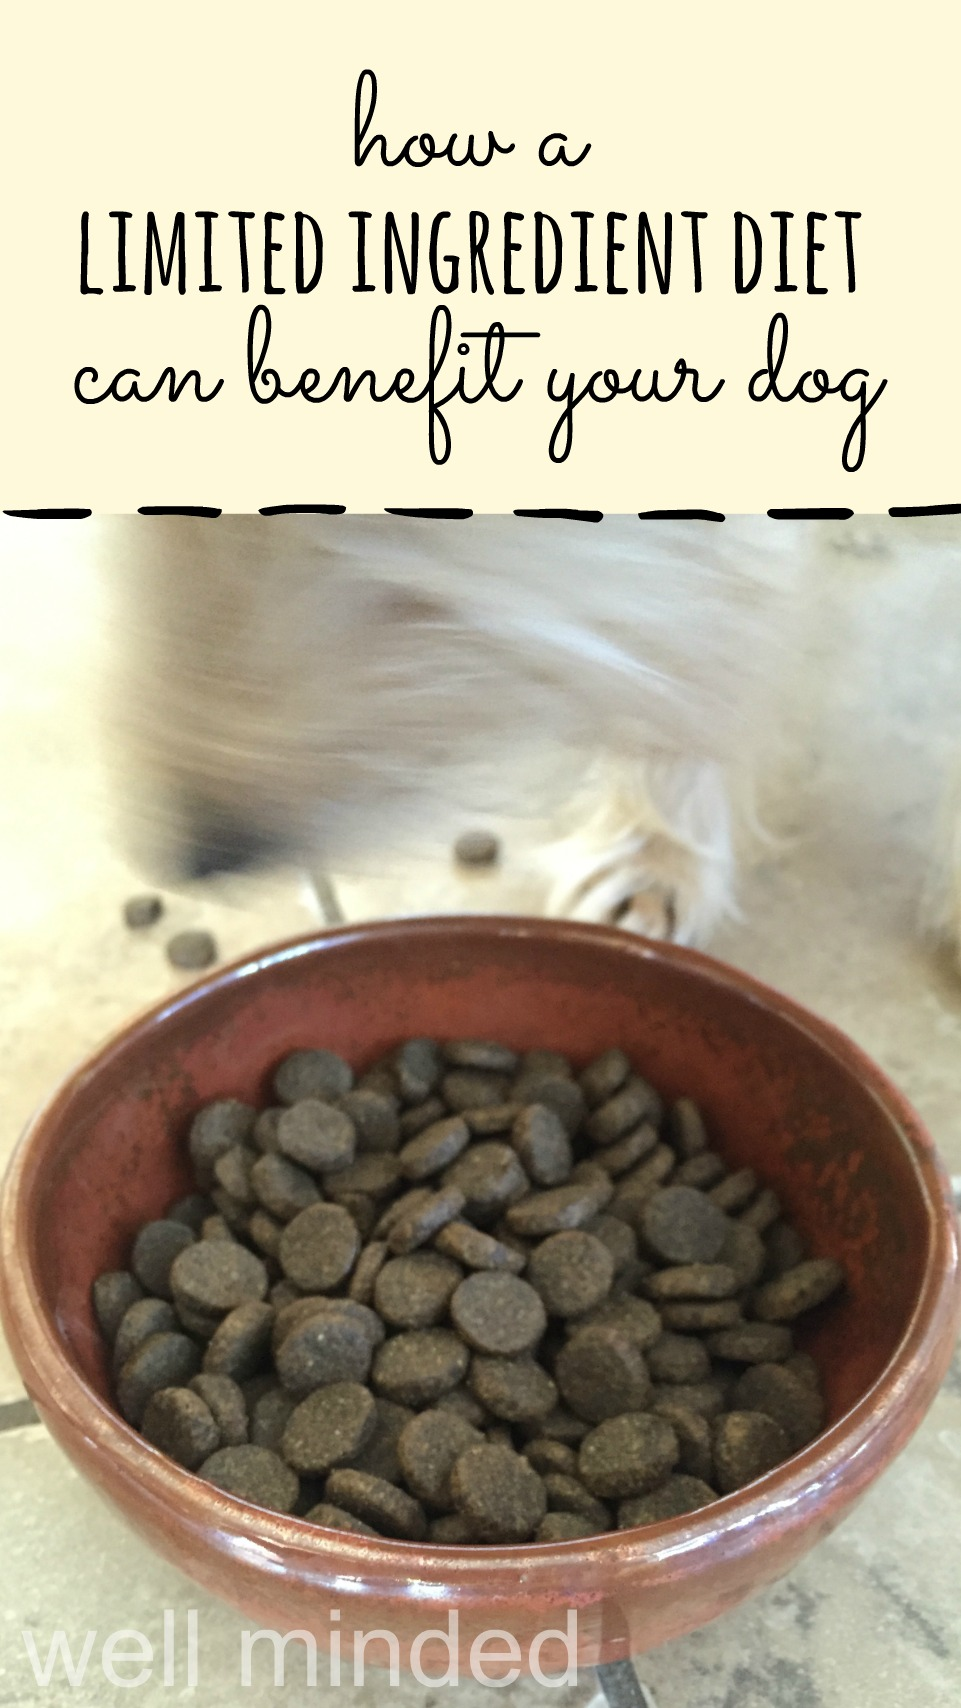 How a Limited Ingredient Diet Can Benefit Your Dog–wellmindedpets.com